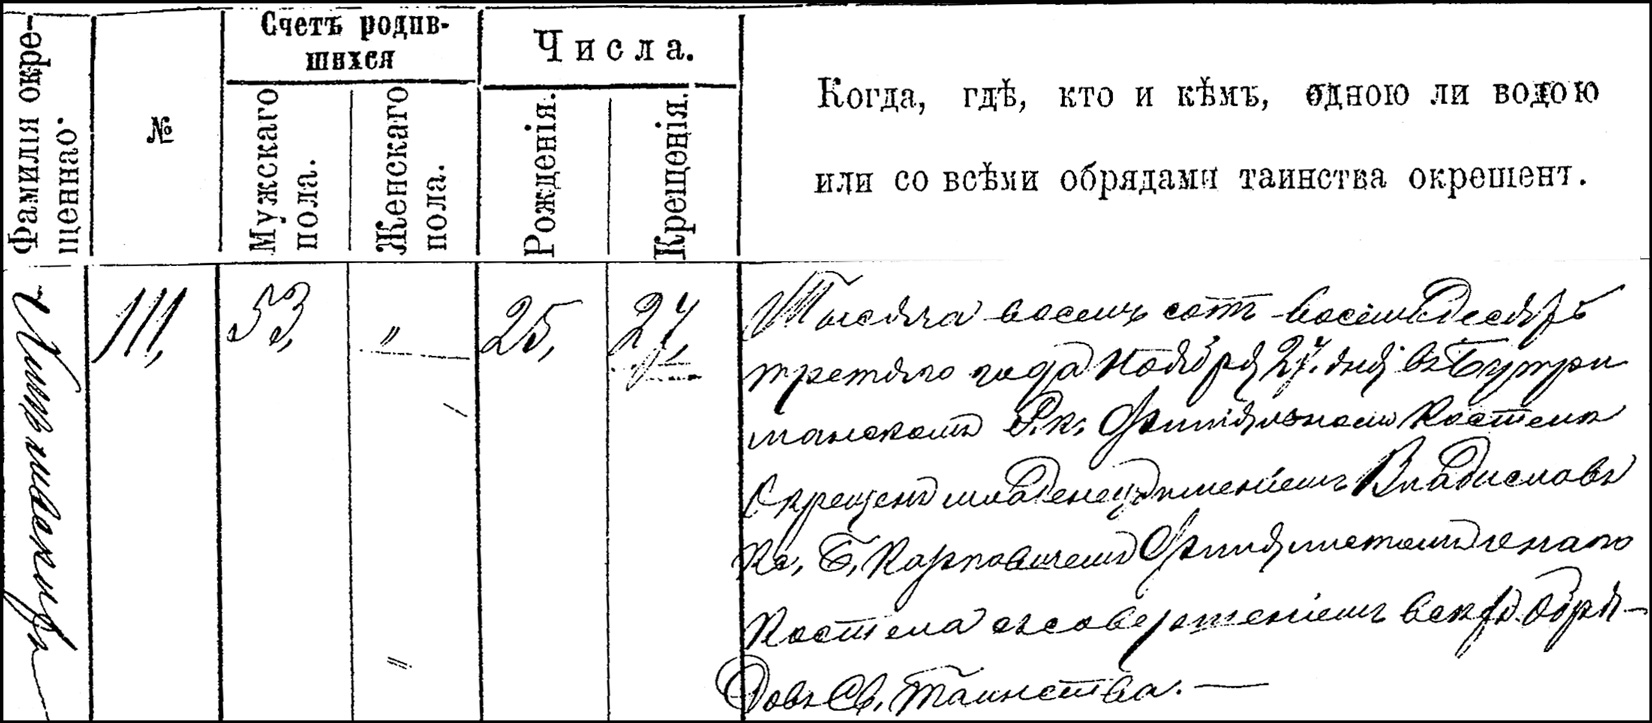 The Birth and Baptismal Record of Wladyslaw Chmielewski - 1883 - Left